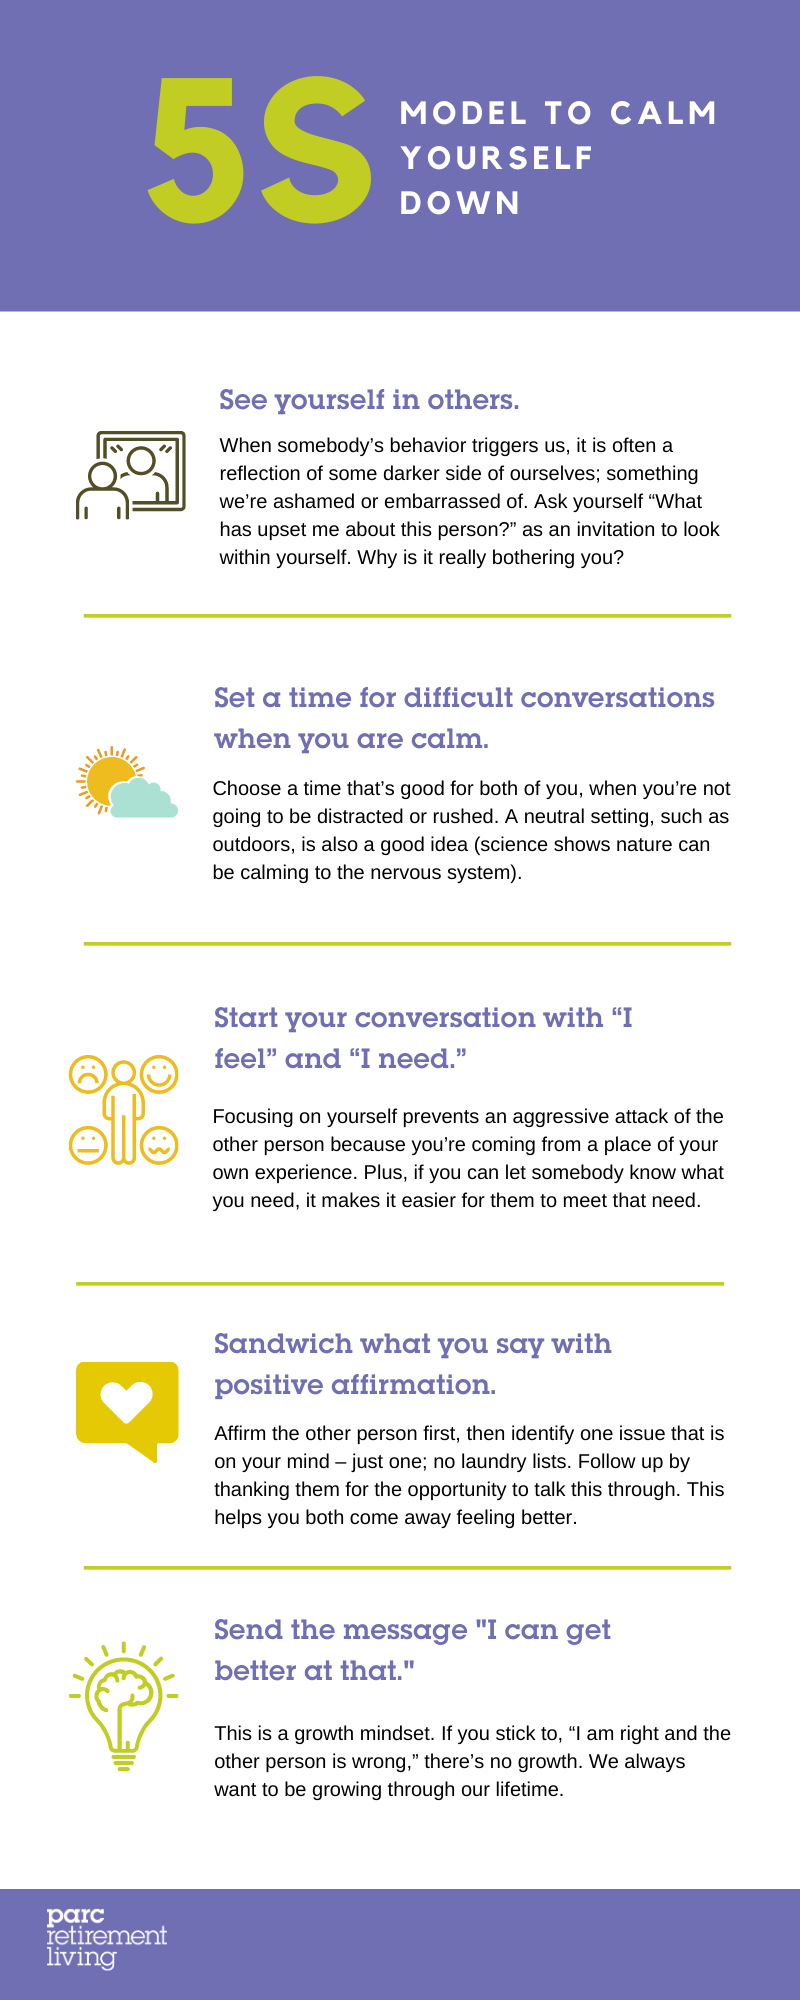 5S infographic tool to calm yourself down